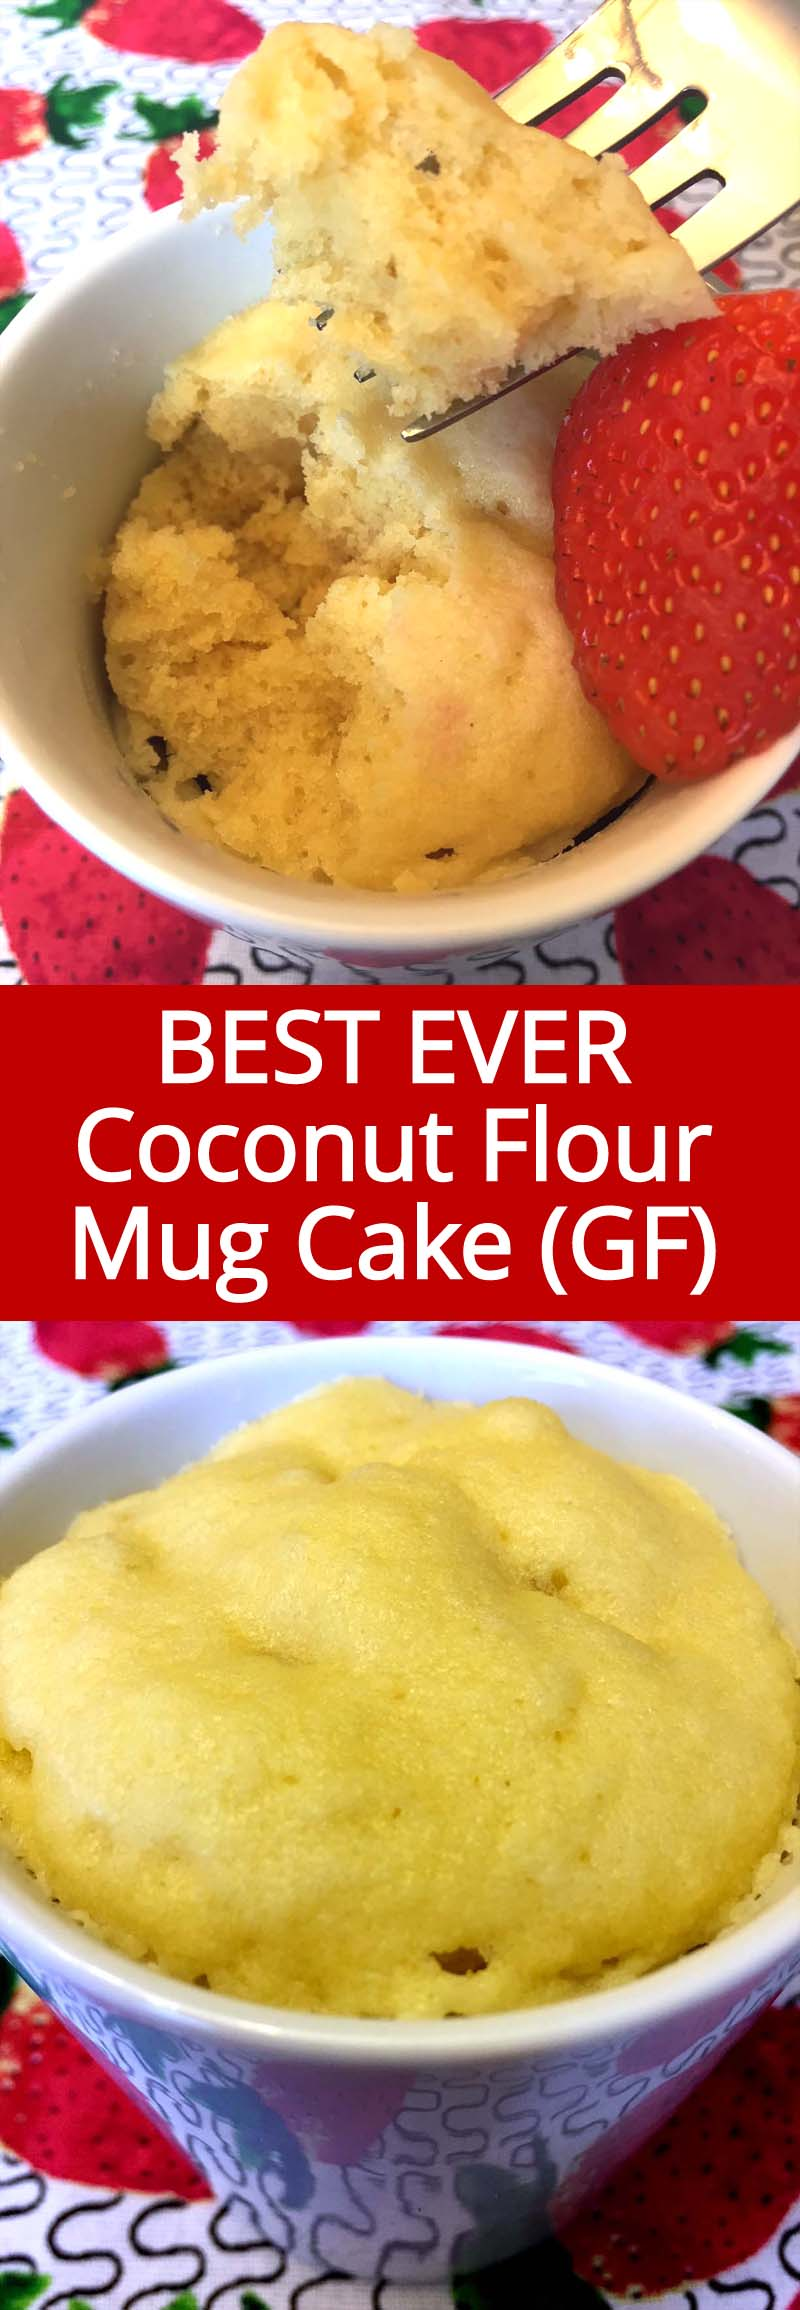 This gluten-free vanilla mug cake is made with coconut flour and tastes amazing! It is so soft and fluffy, this is my favorite vanilla mug cake ever!  That's a healthy breakfast I look forward to!